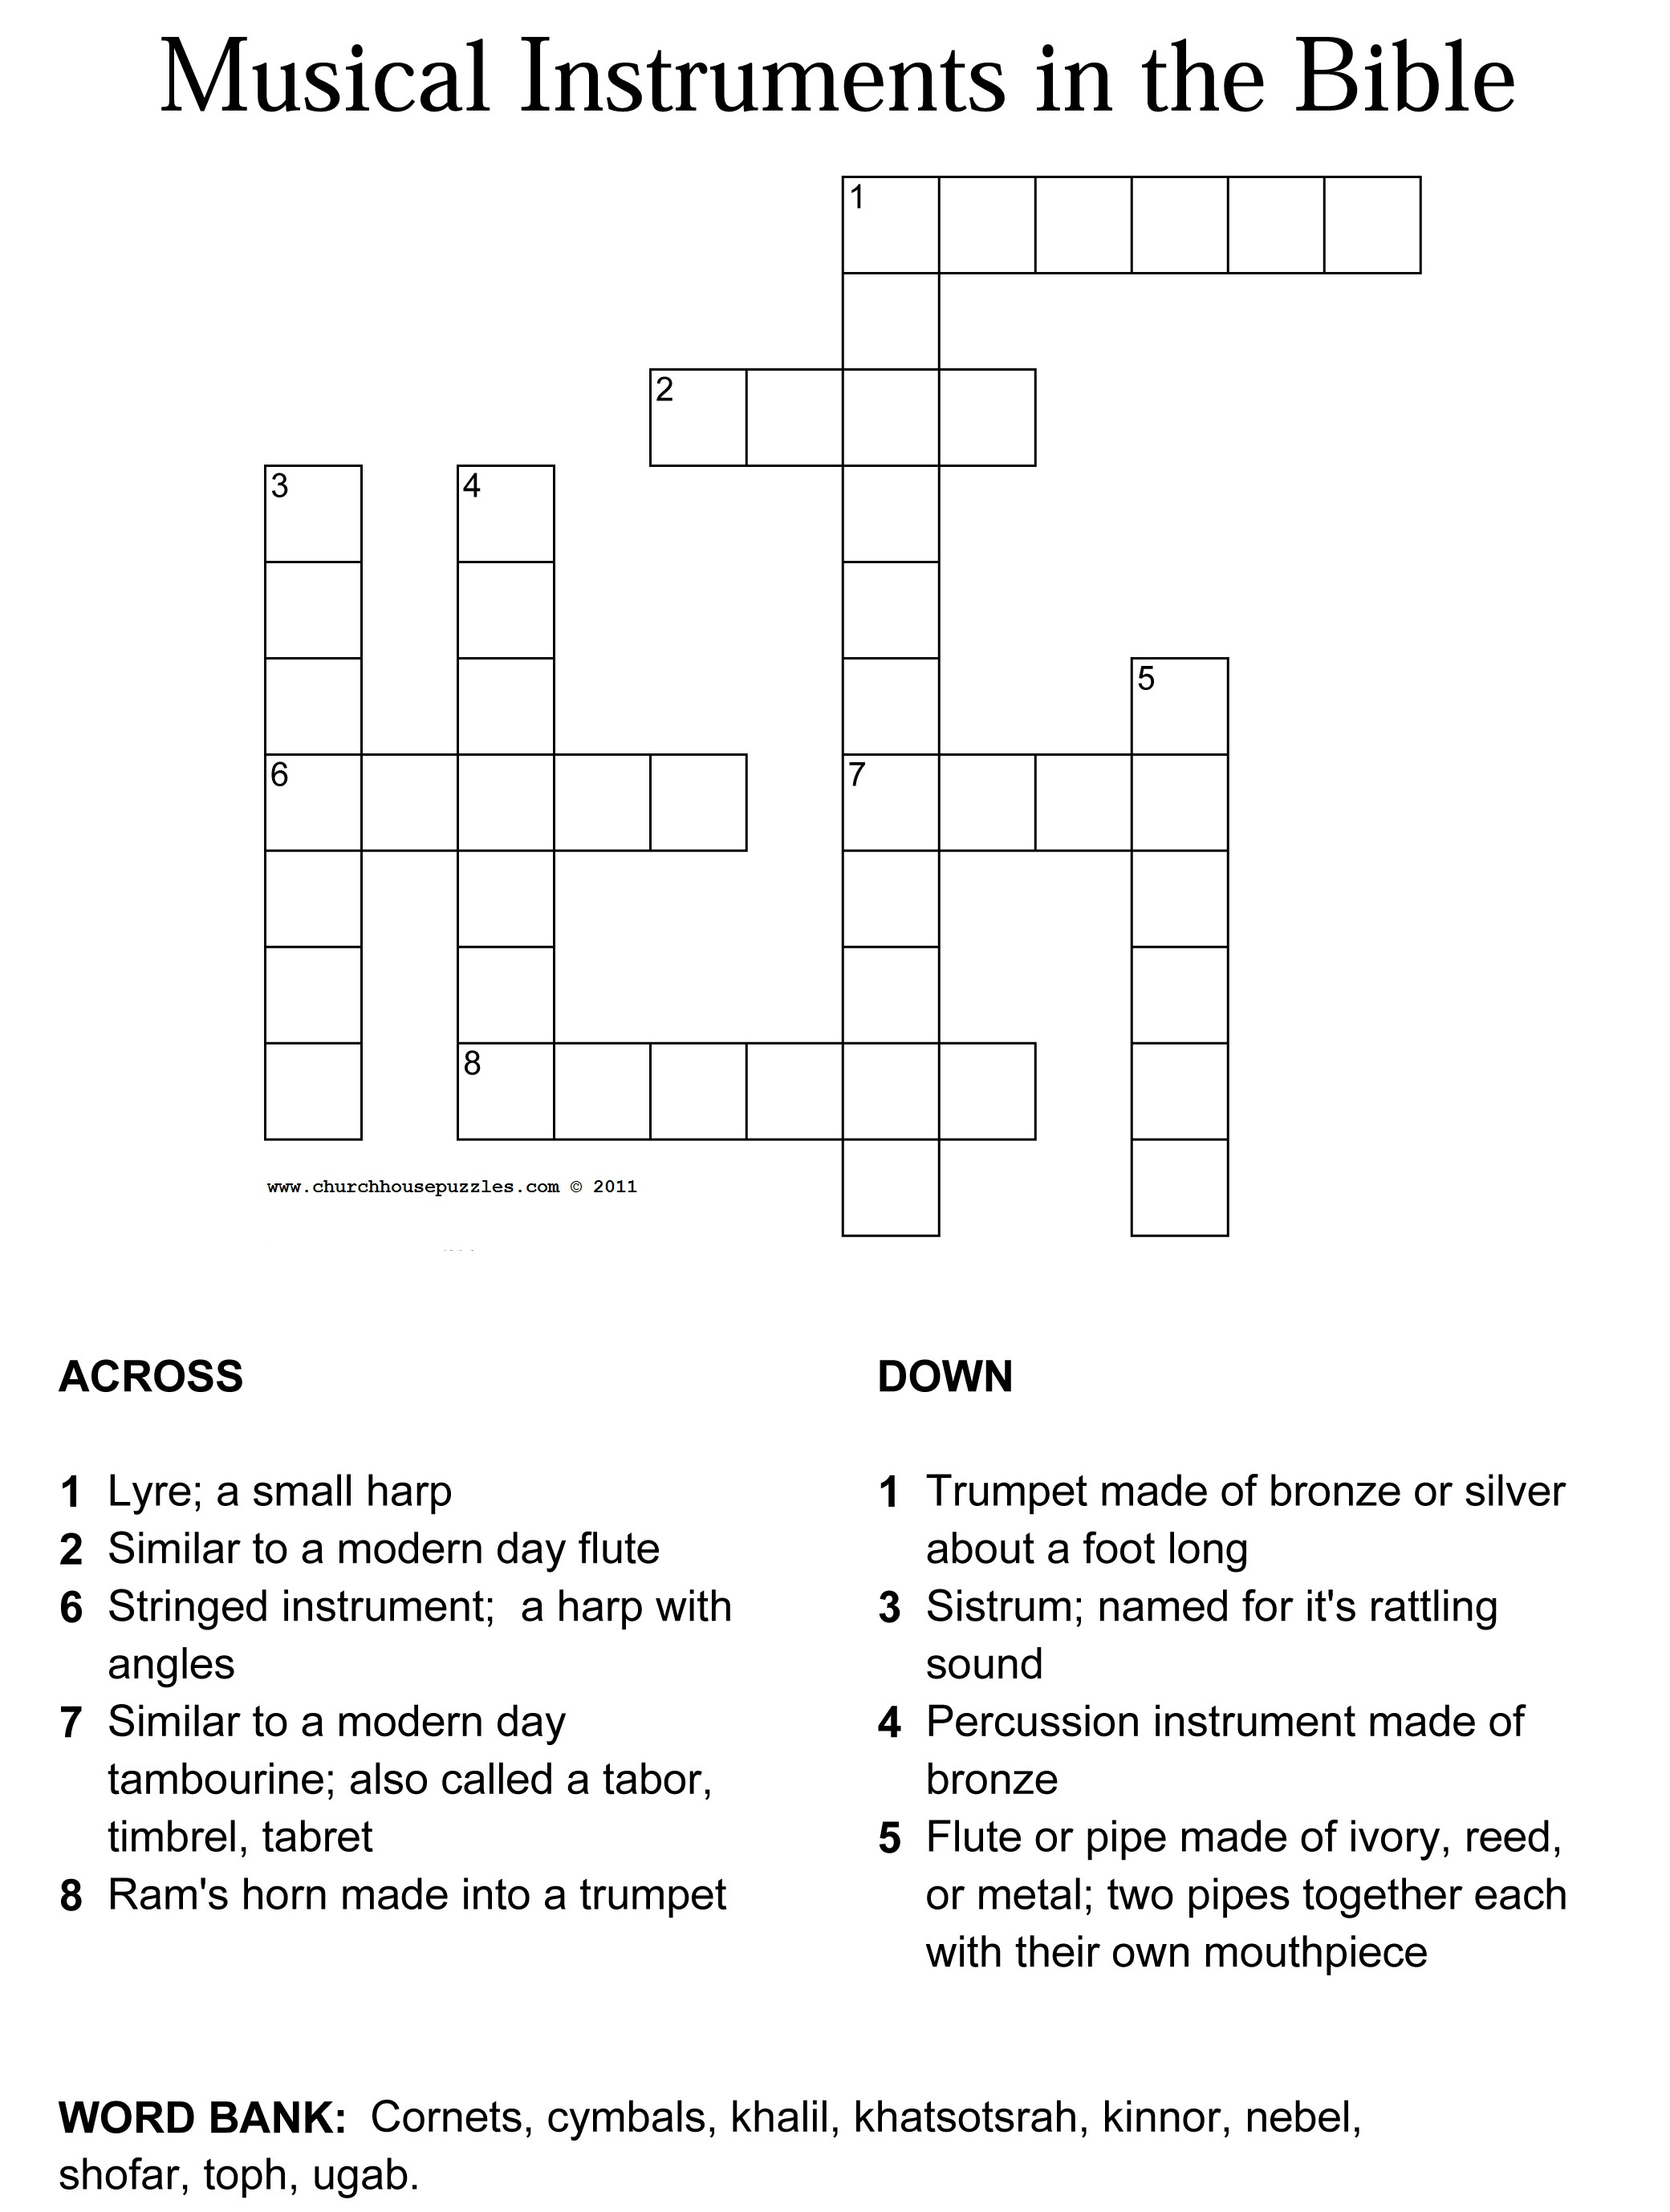 Musical Instruments Of The Bible Crossword Puzzle